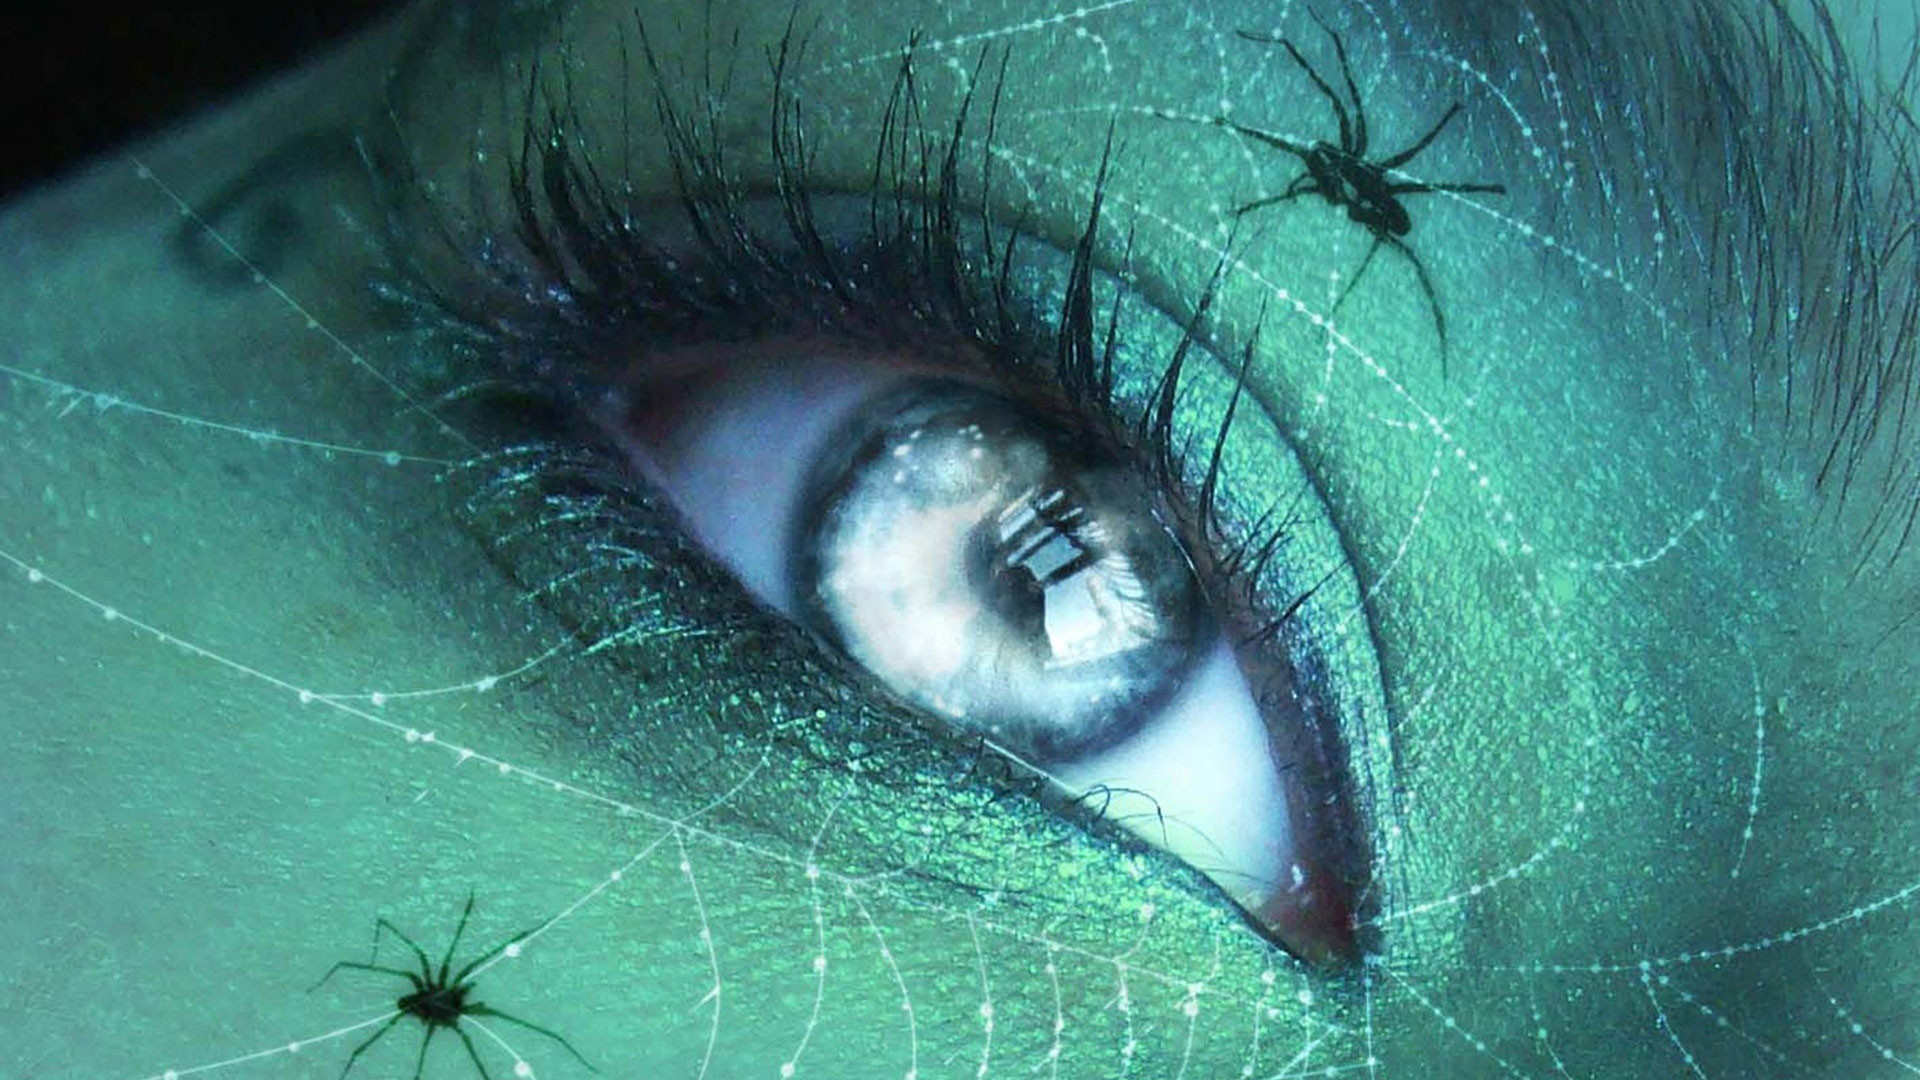 1920x1080 hd pics photos beautiful cute eye close up spider web macro hd quality  desktop background wallpaper